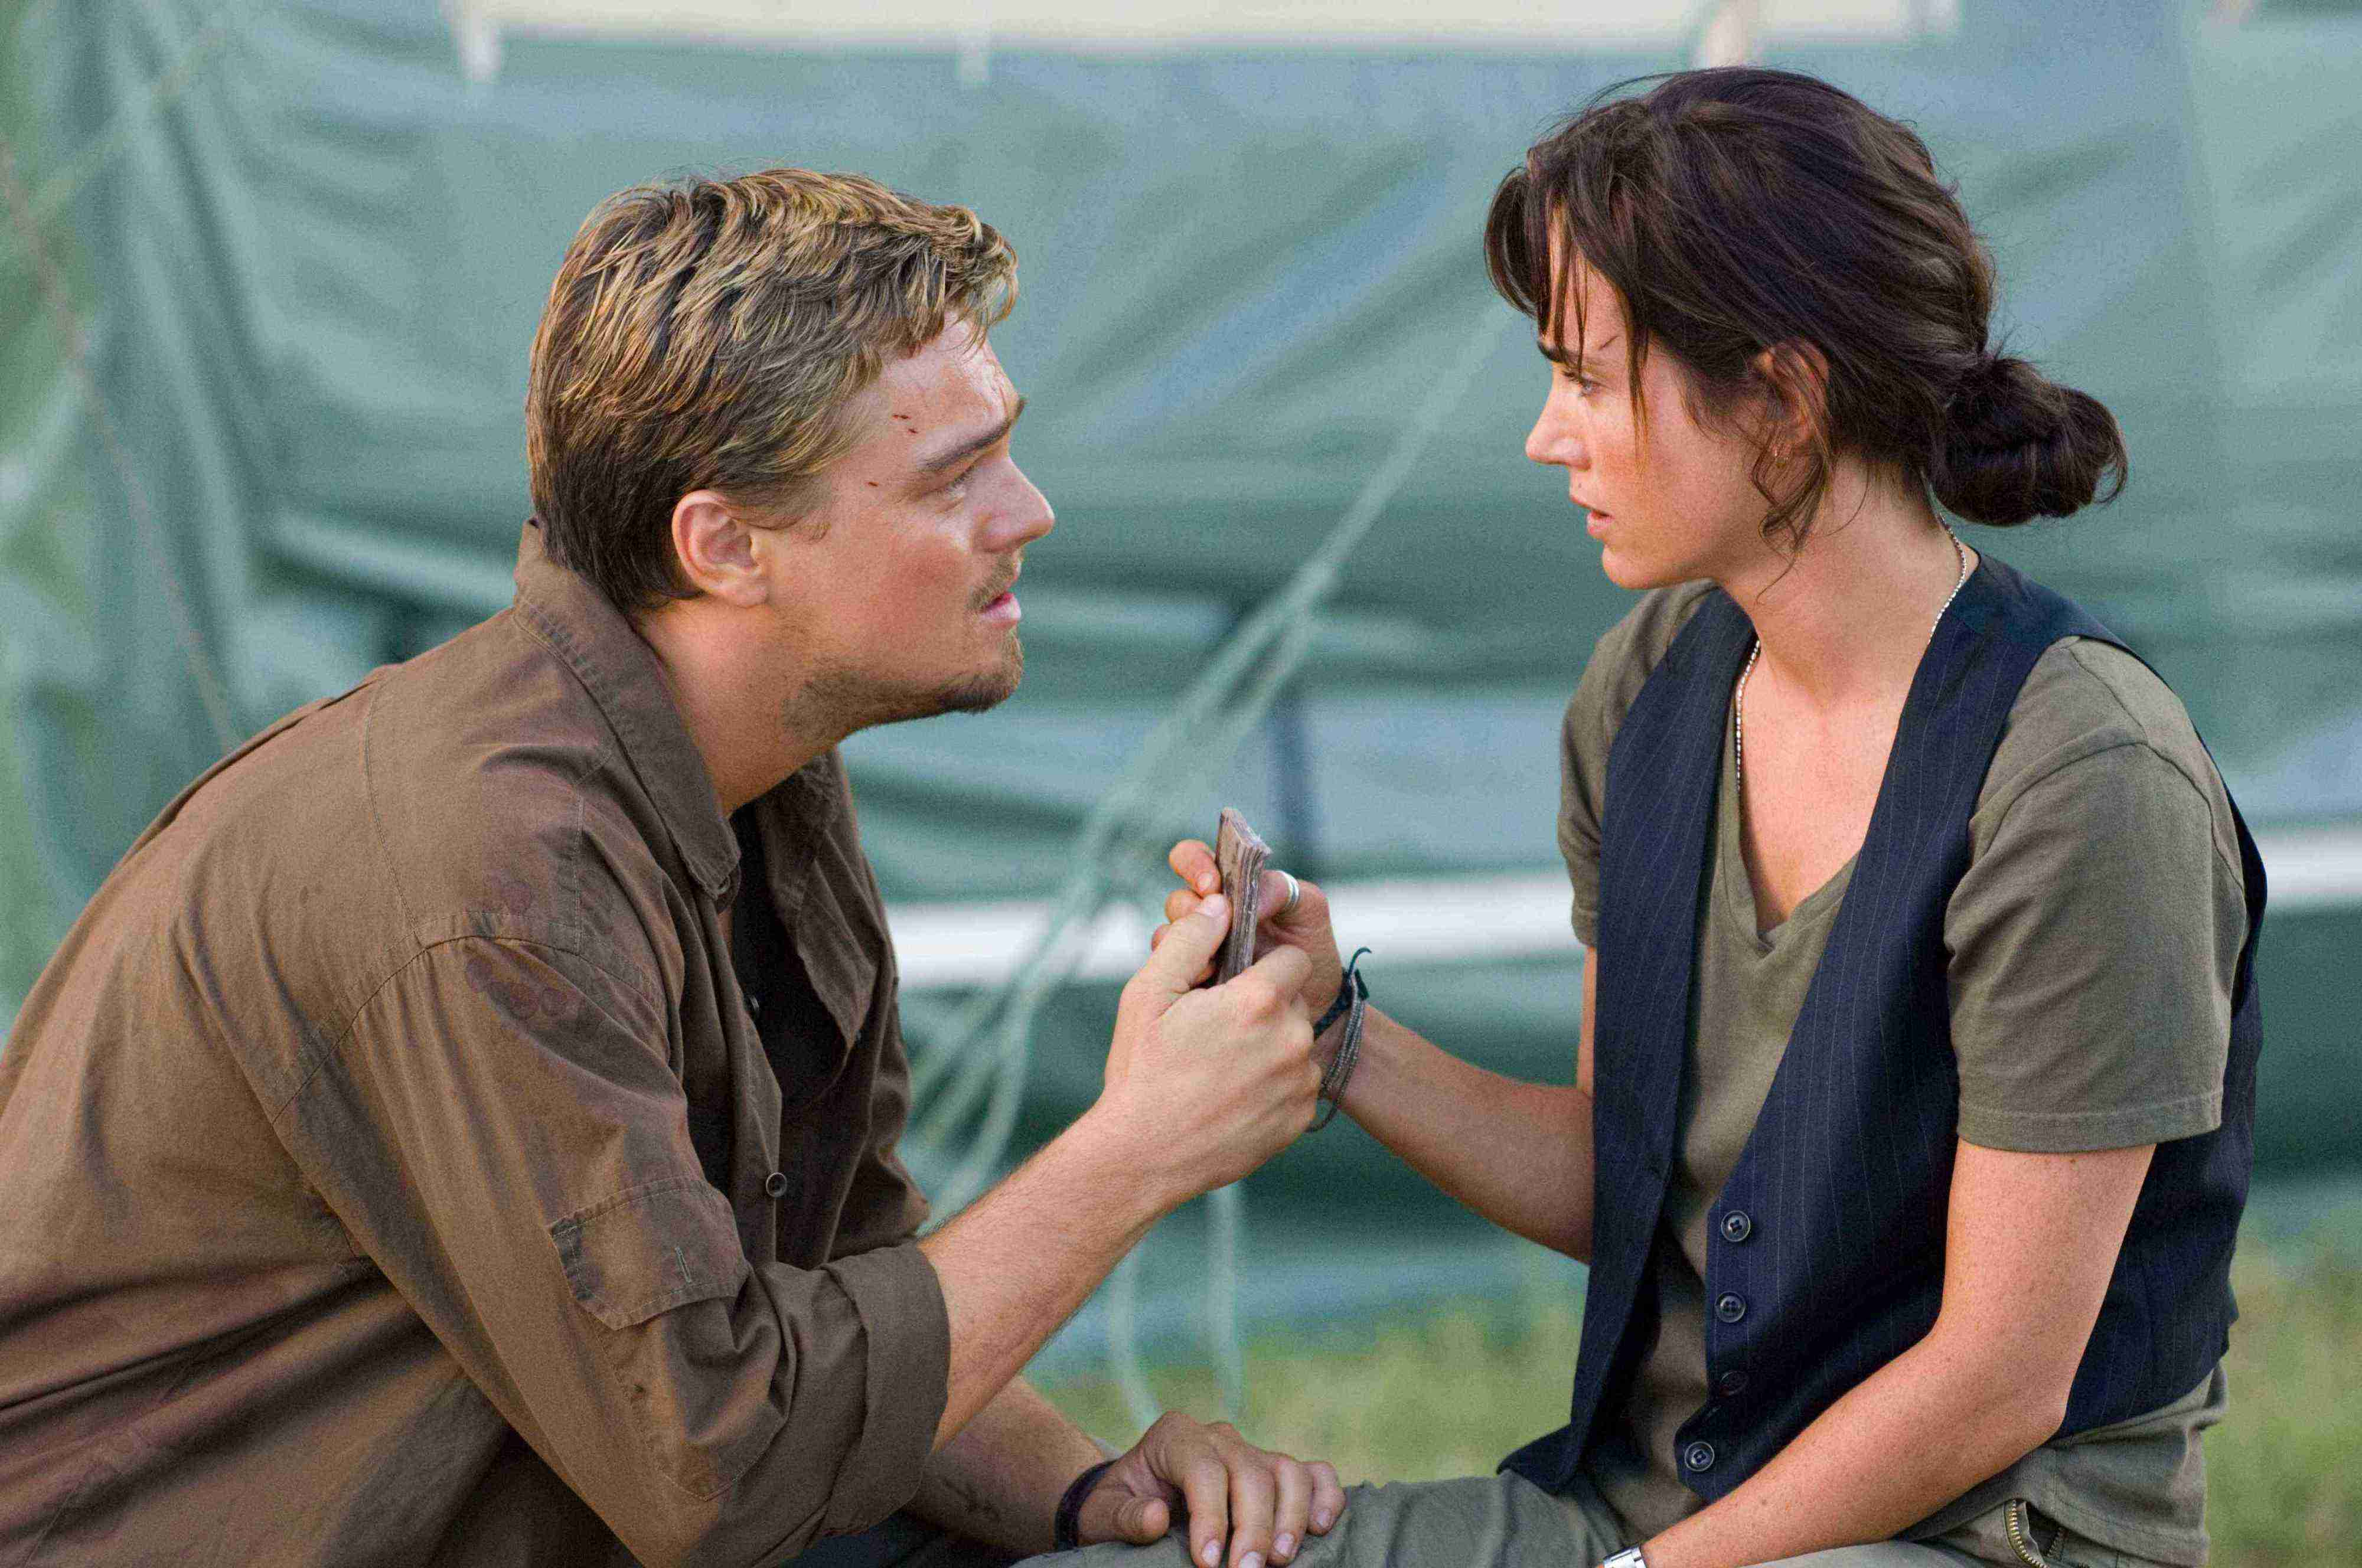 blood-diamond-leonardo-di-caprio-jennifer-connelly